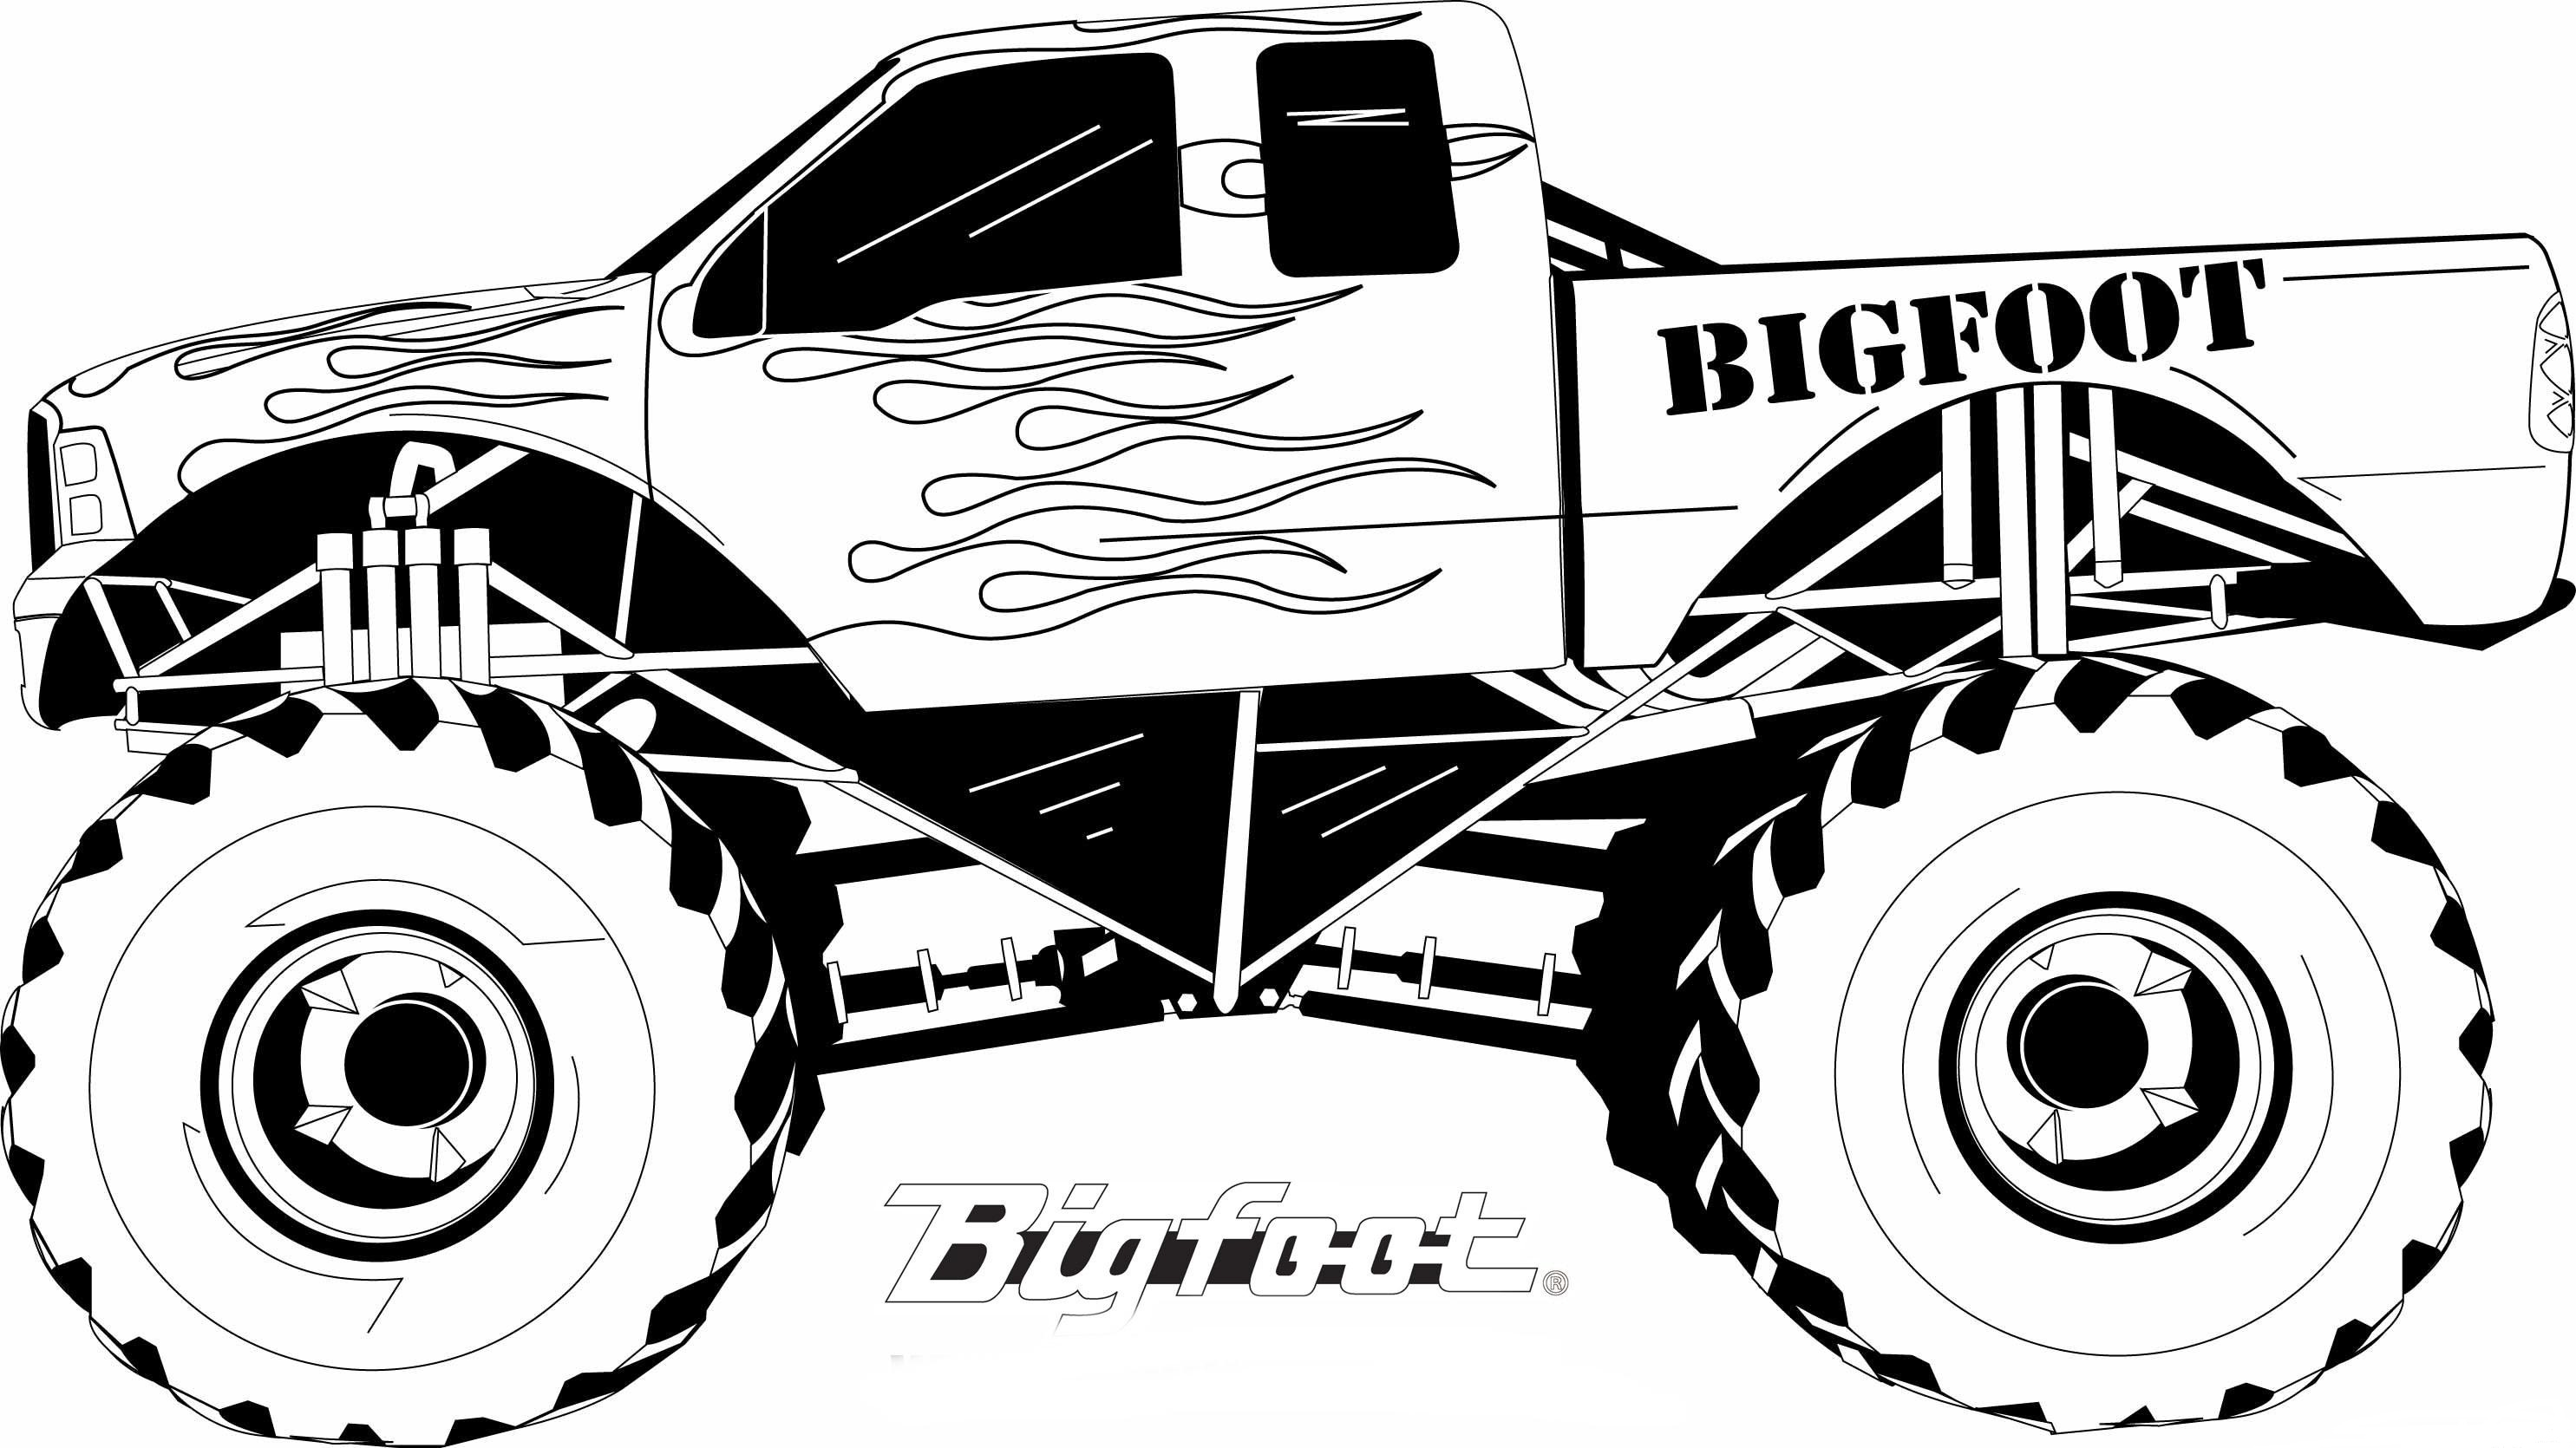 Bigfoot from Monster Truck